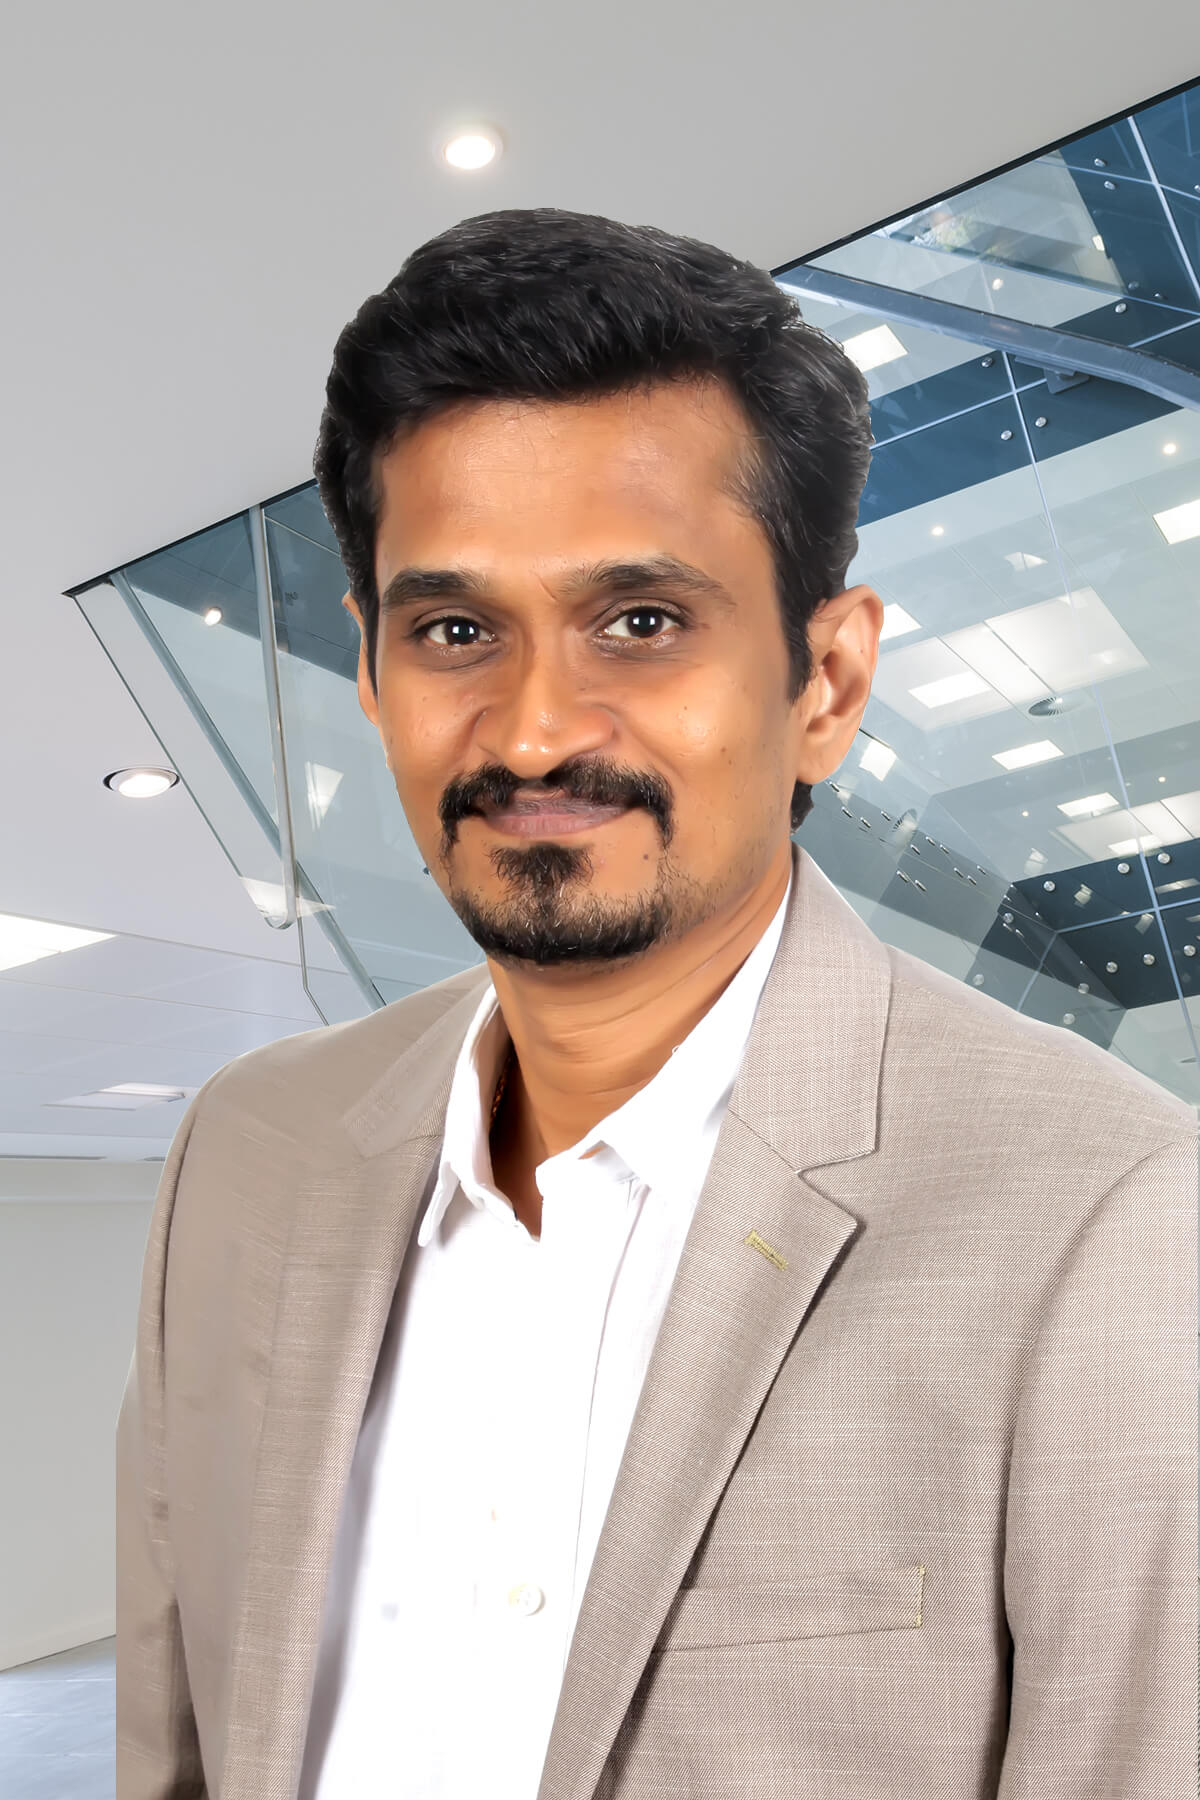 Madhu Seri, Vice President, India Operations